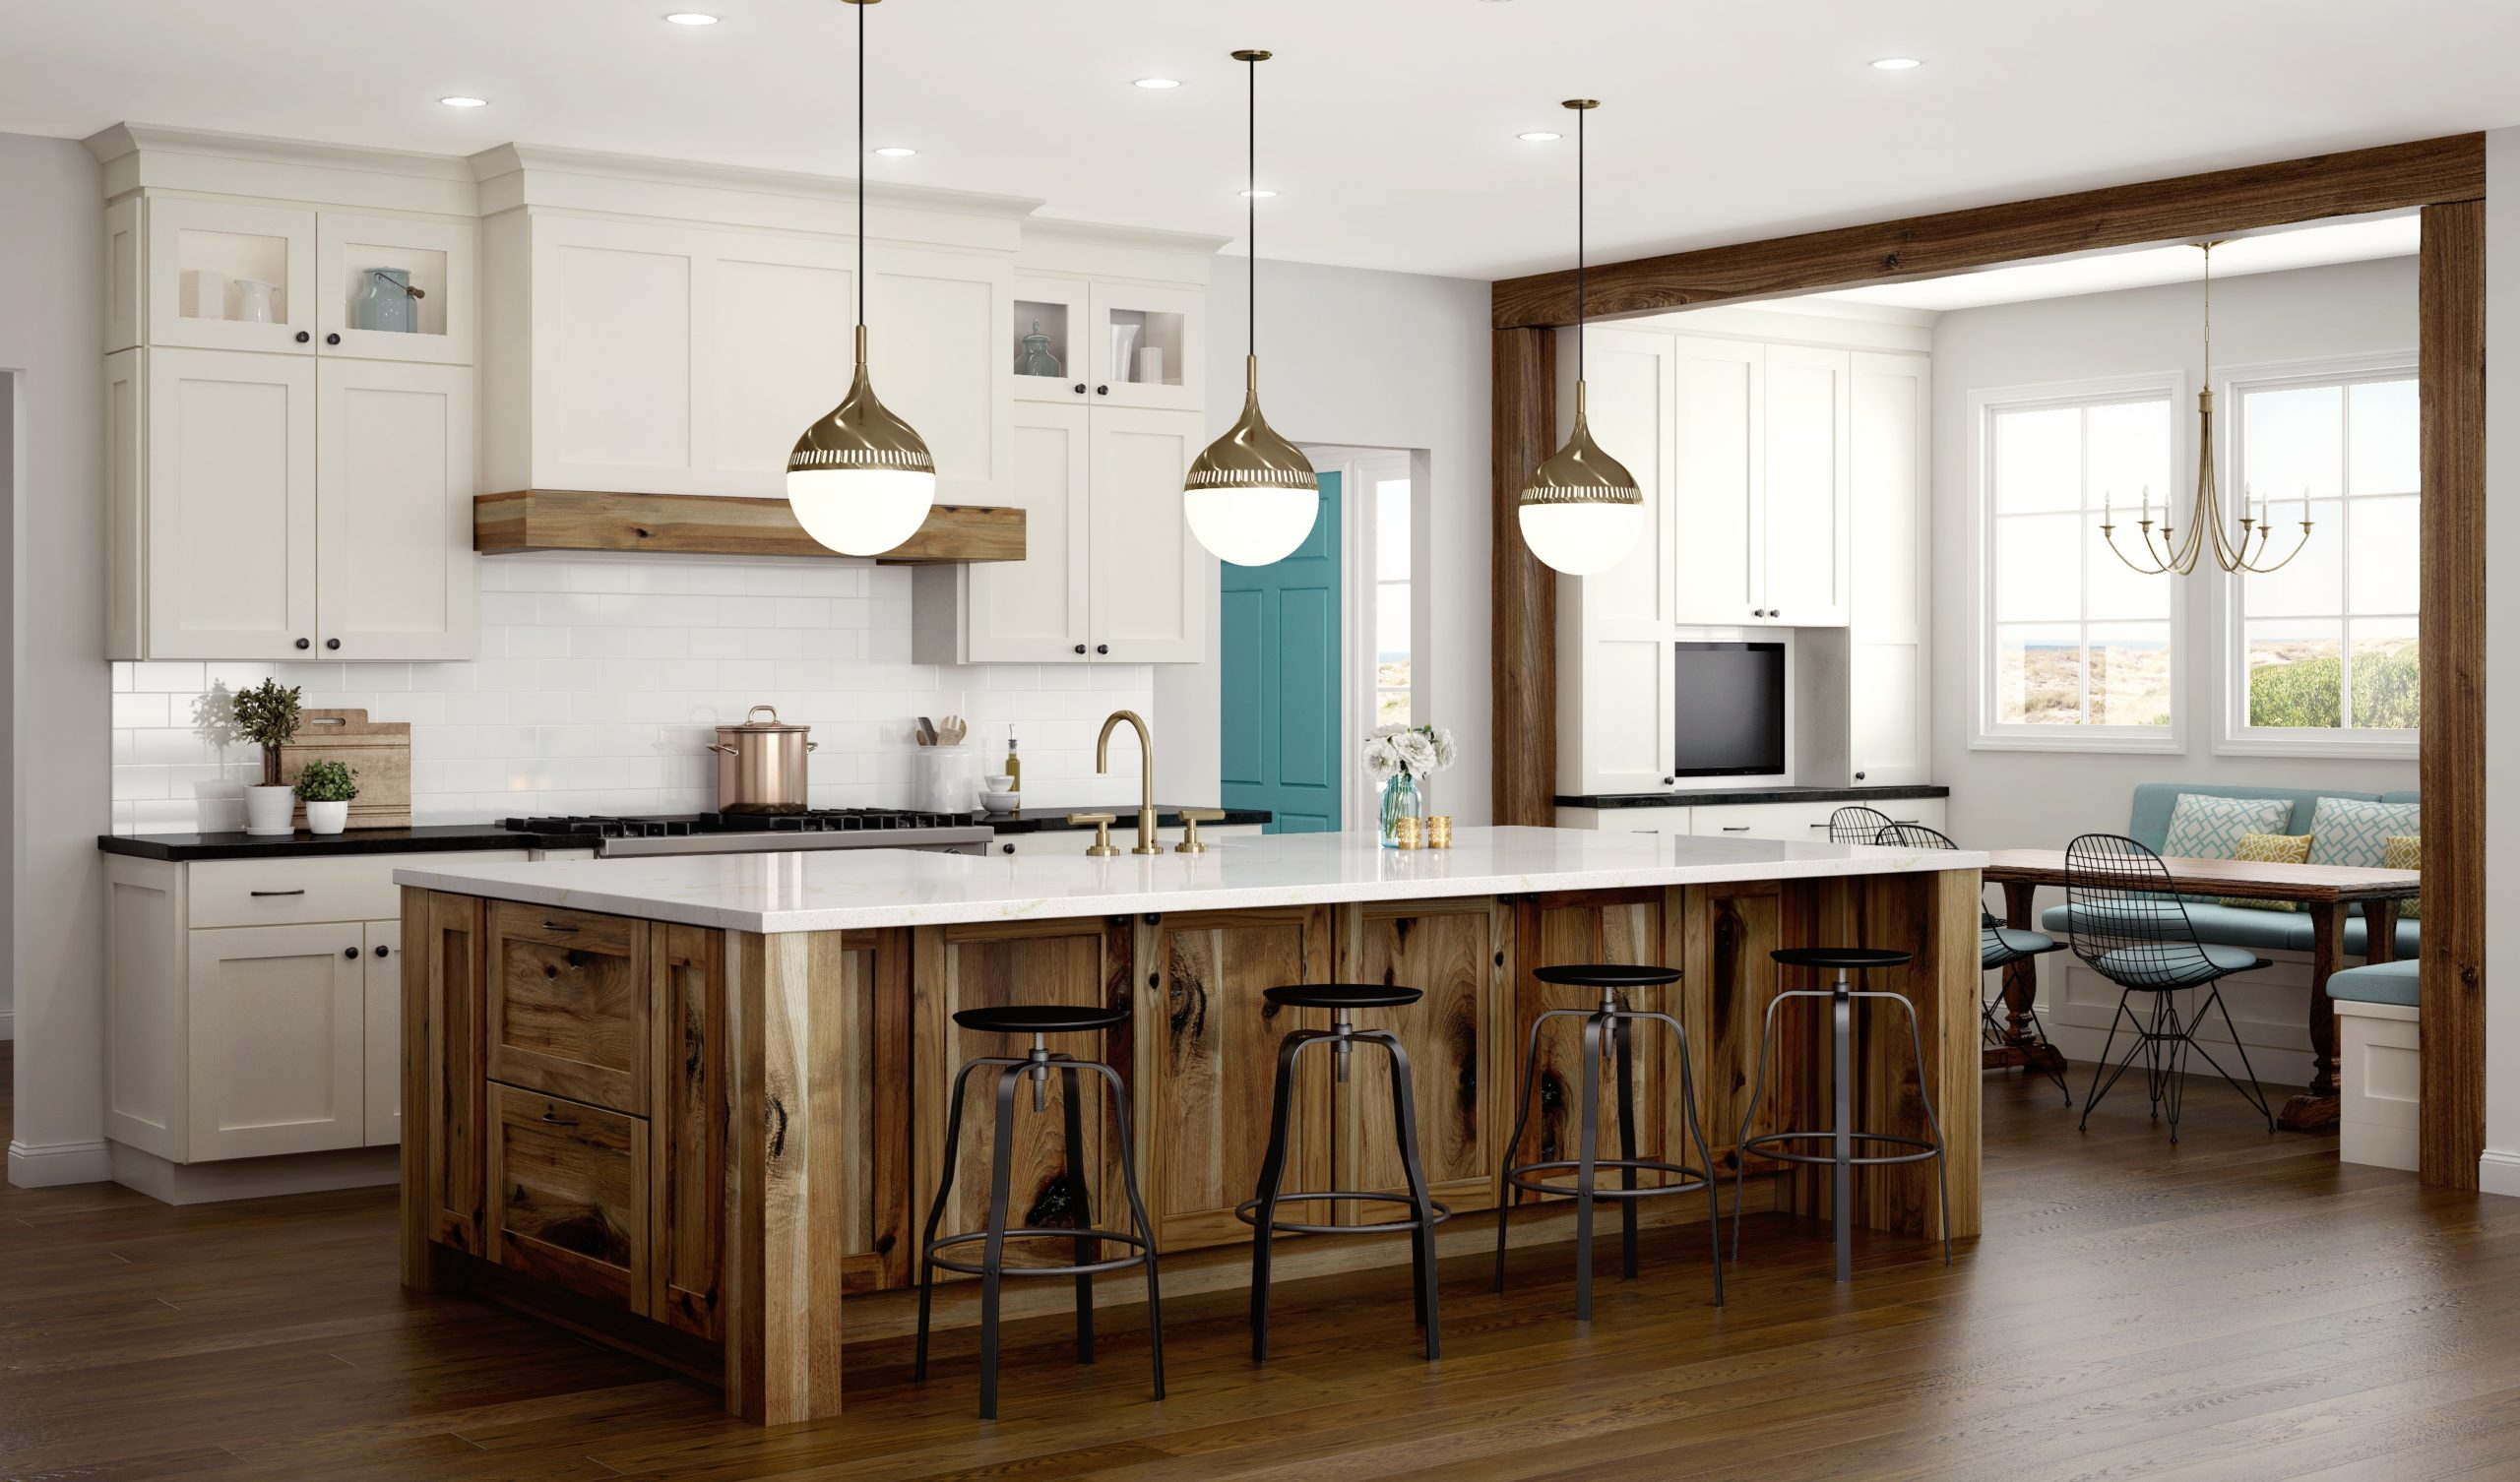 cary kitchen cabinet design remodeling cary raleigh chapel hill nc. Black Bedroom Furniture Sets. Home Design Ideas